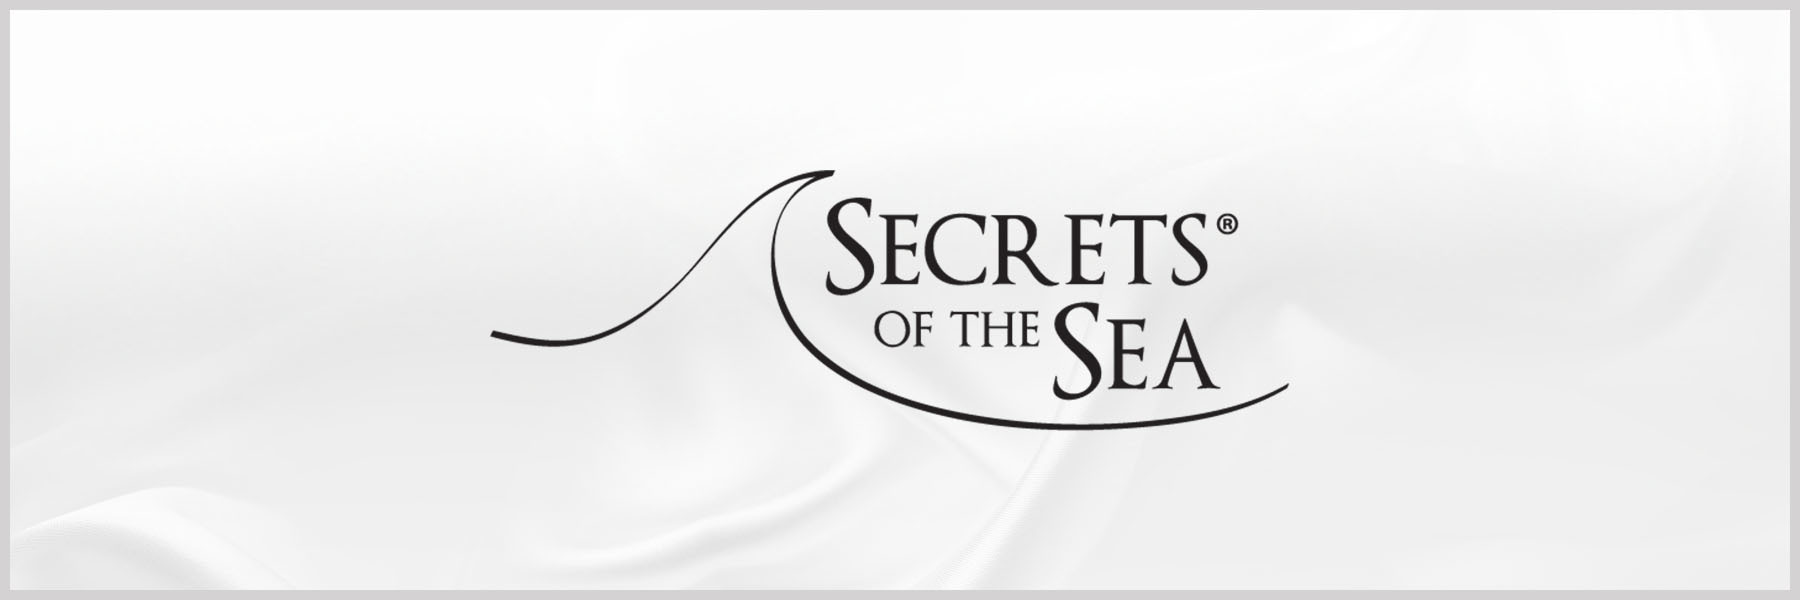 secrets-of-the-sea-jewellery-banner